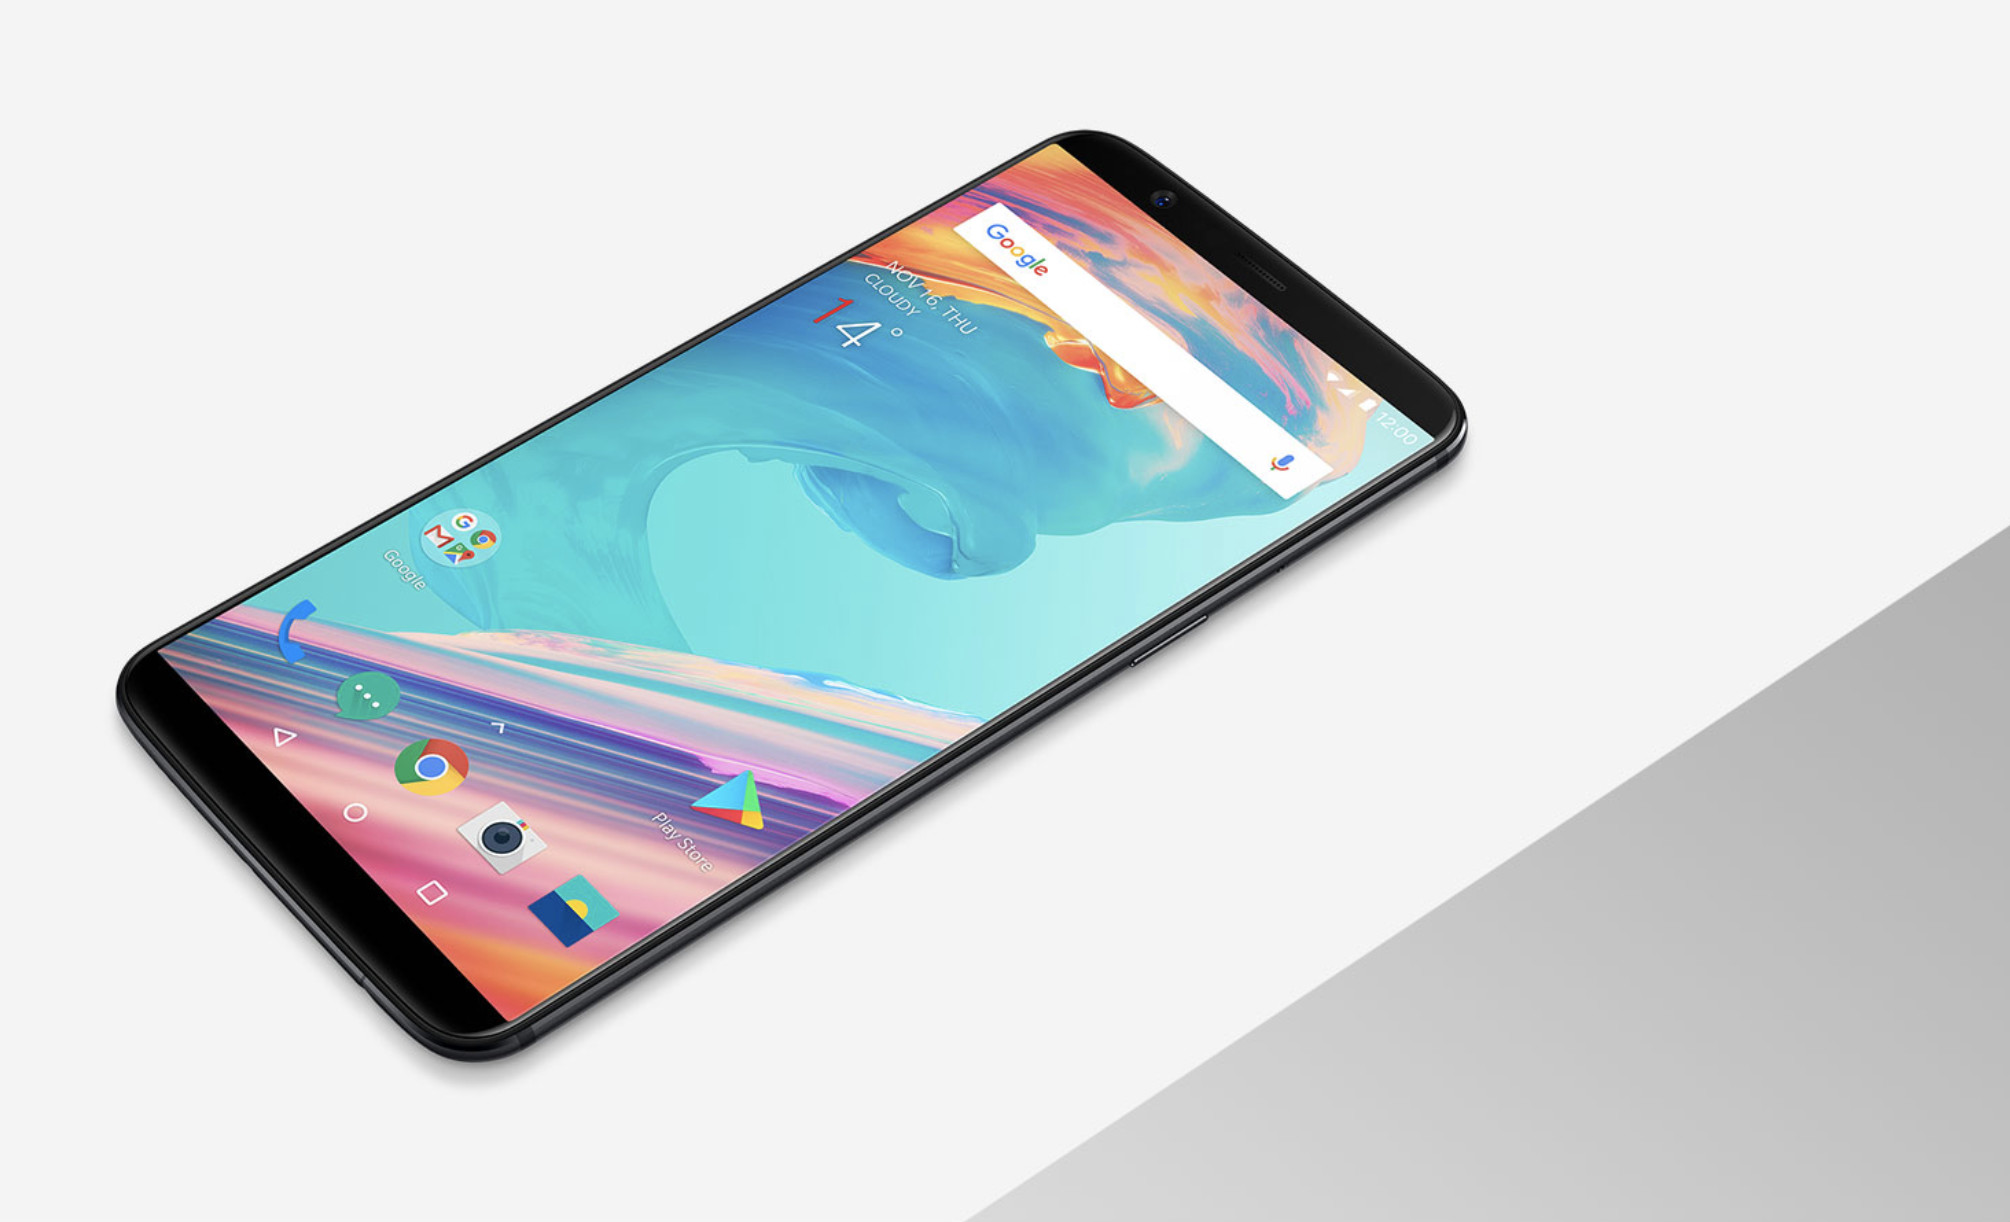 HD streaming support coming to OnePlus 5T, company confirms